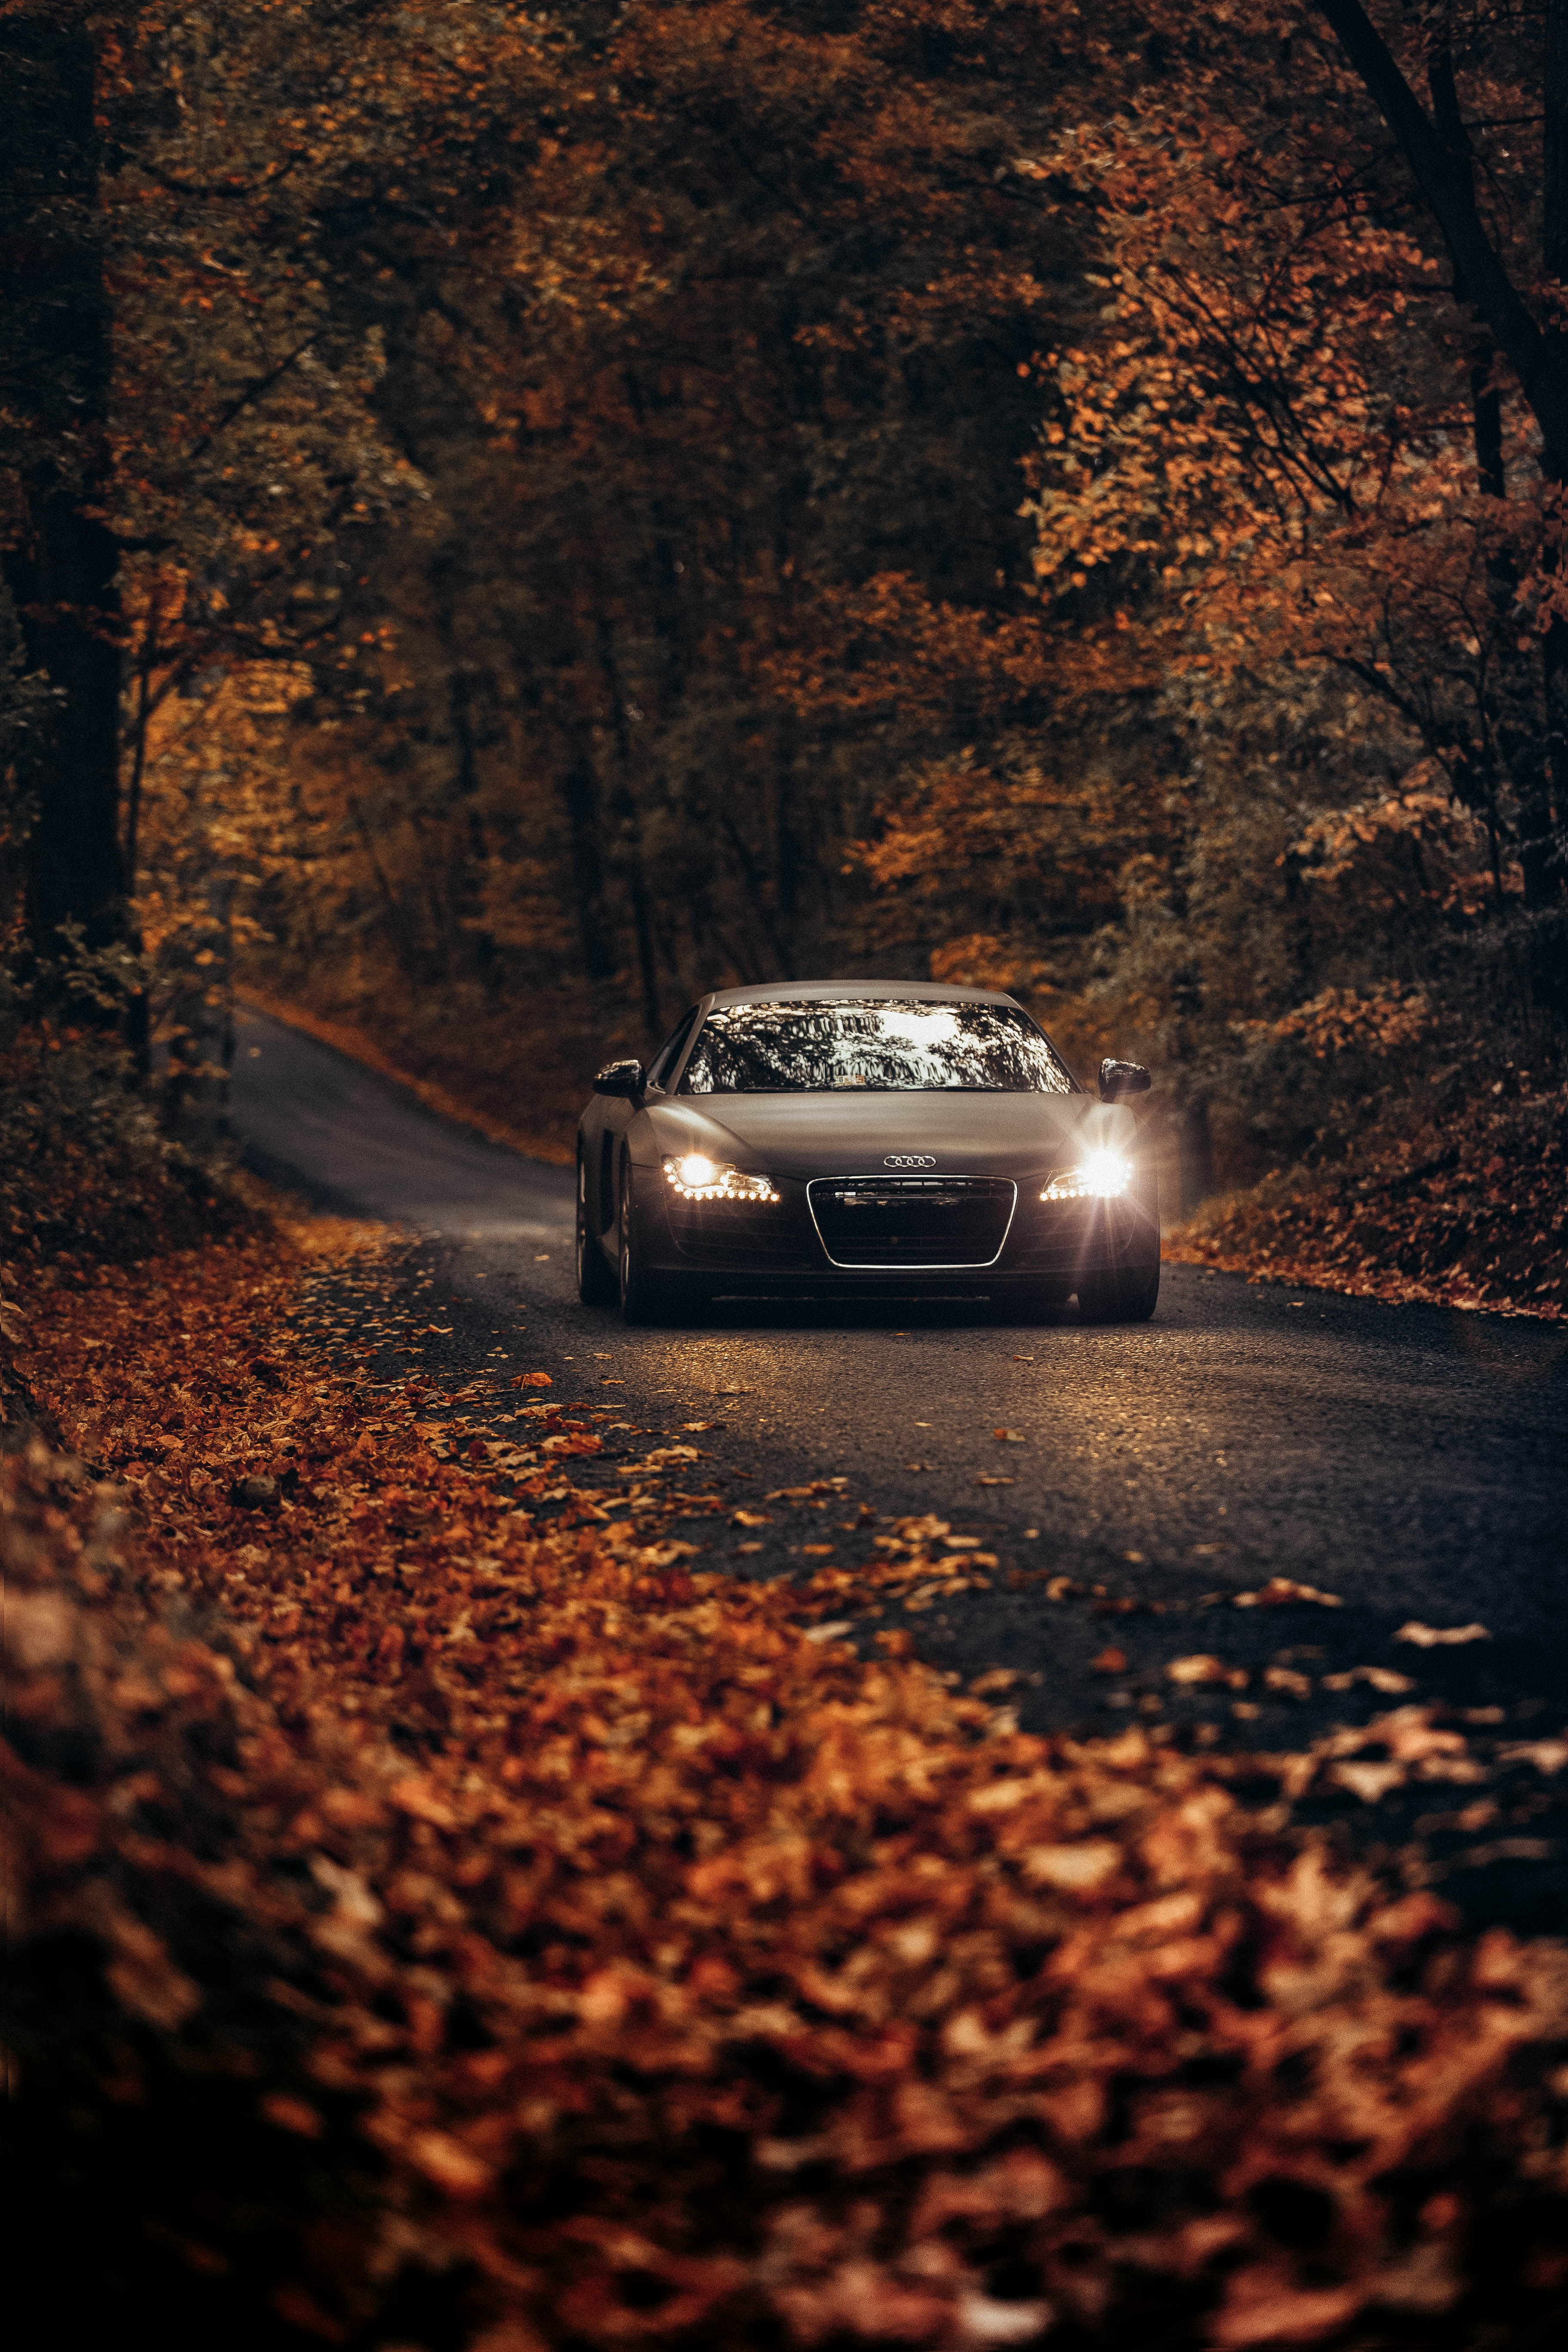 Autumn & Winter Driving. Head Light bulbs